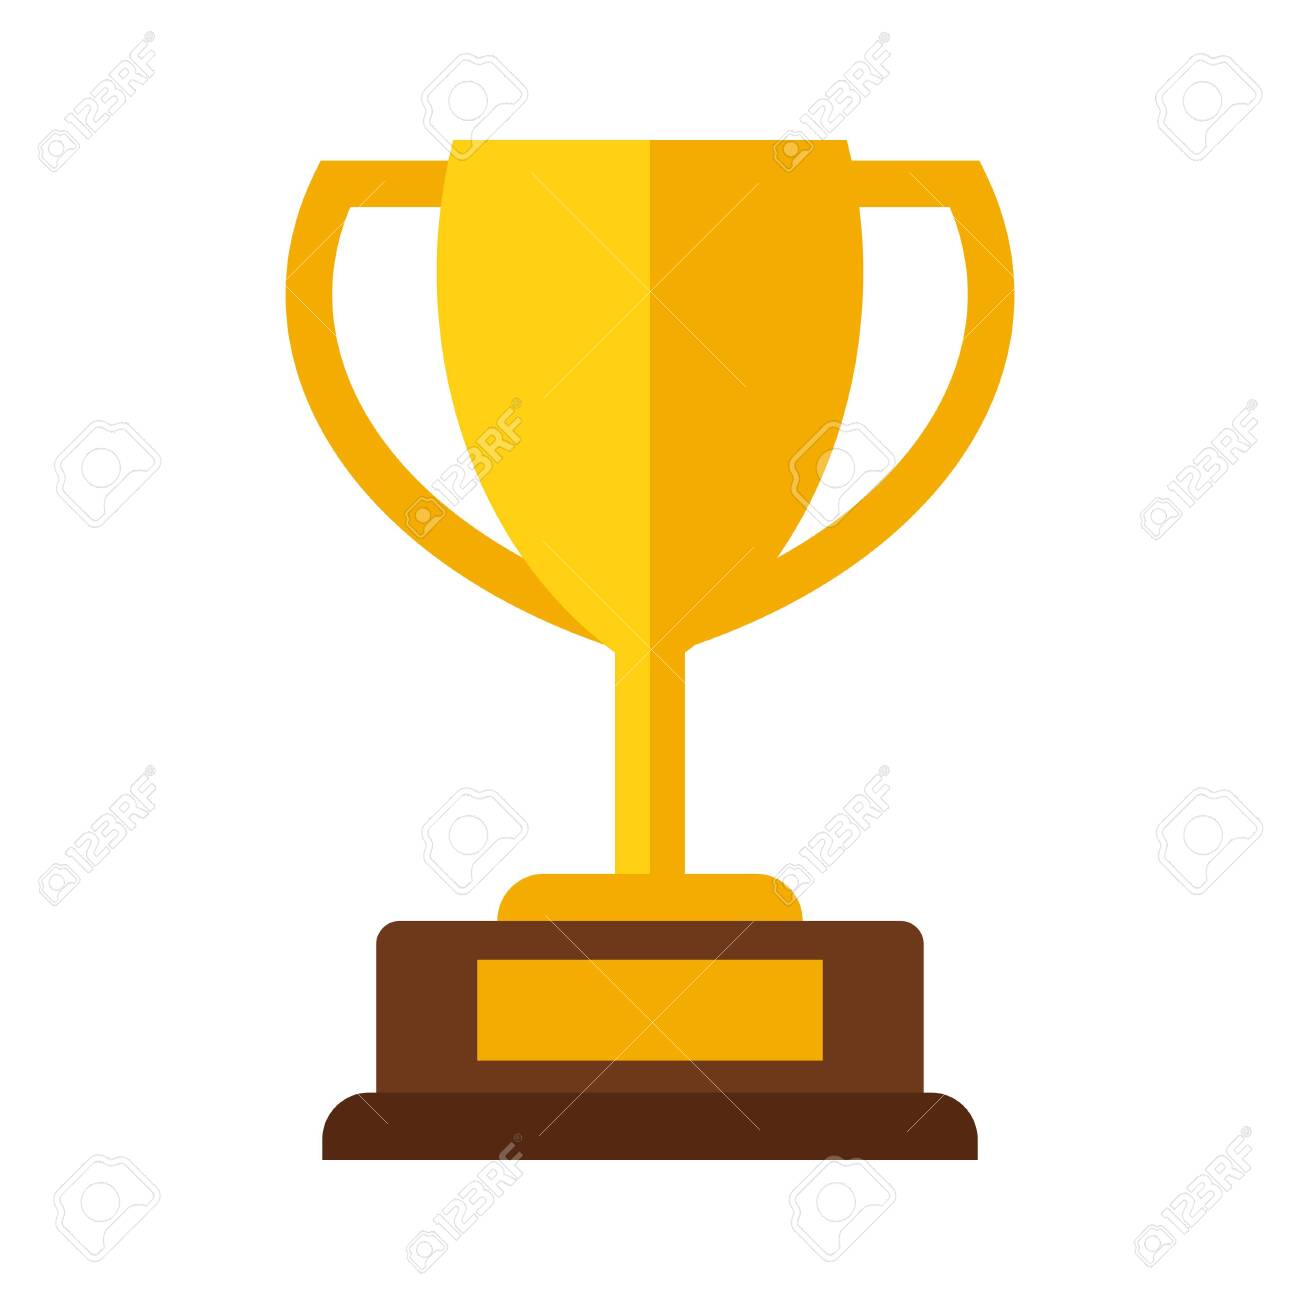 Golden champions cup award icon isolated on white background. Winner trophy vector illustration - 157522450